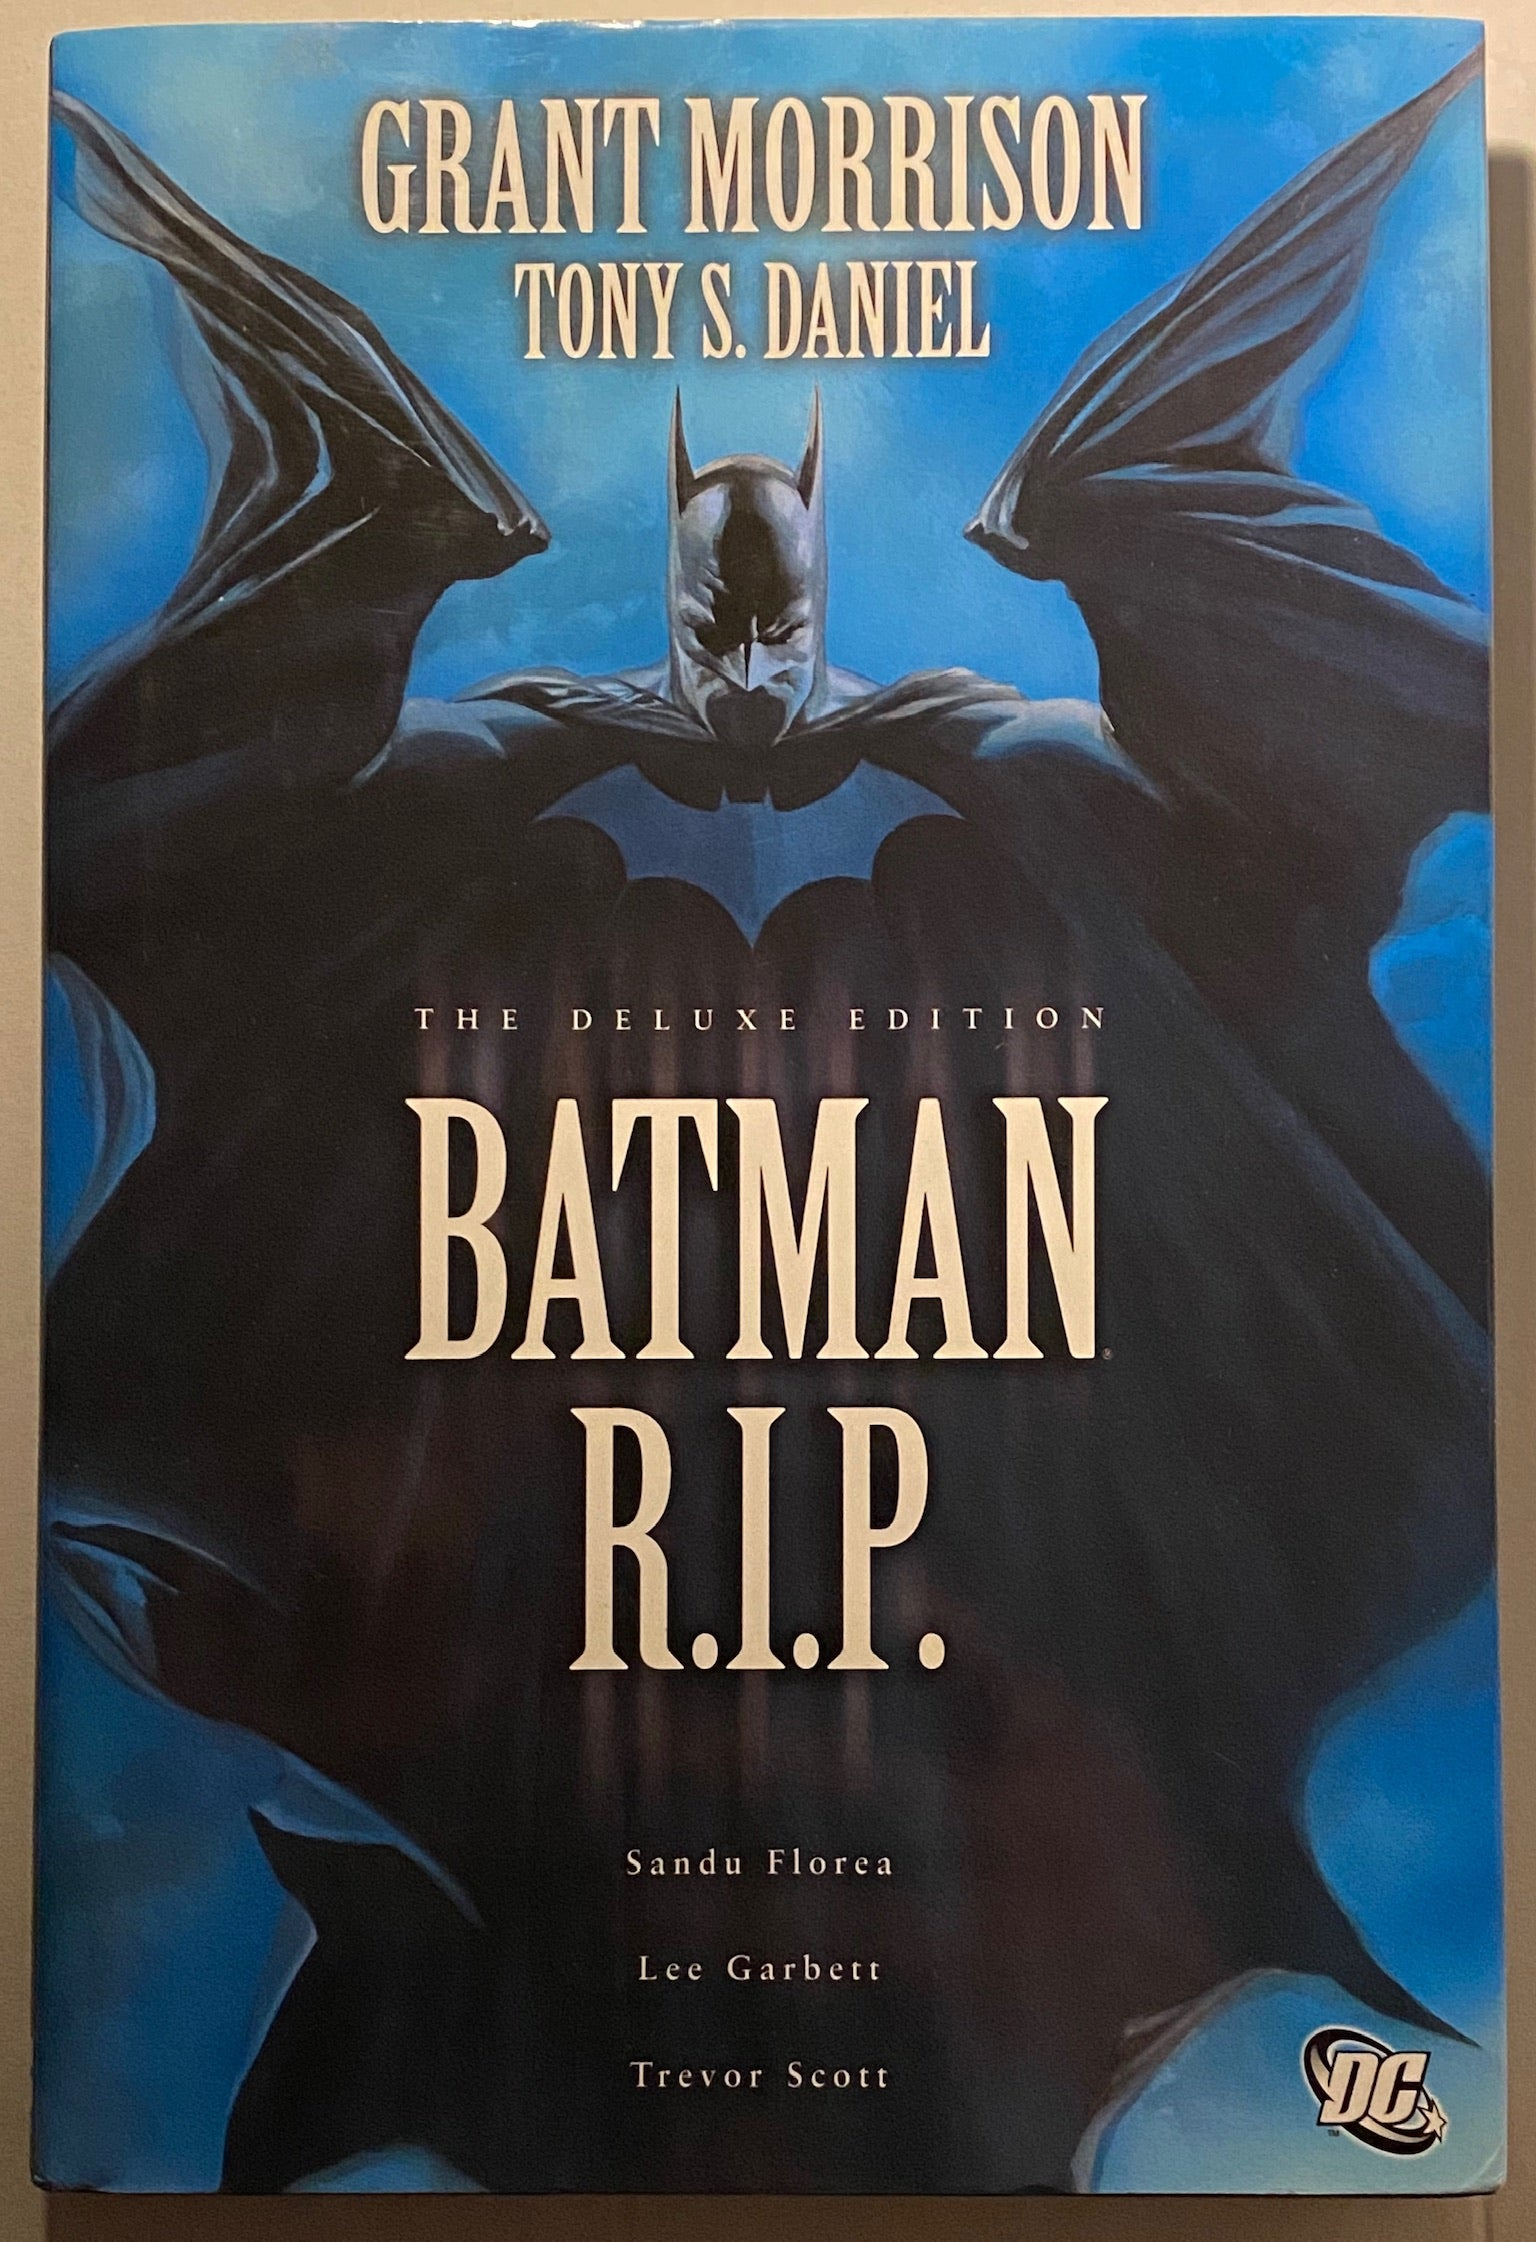 BATMAN: R.I.P. (Deluxe Edition)